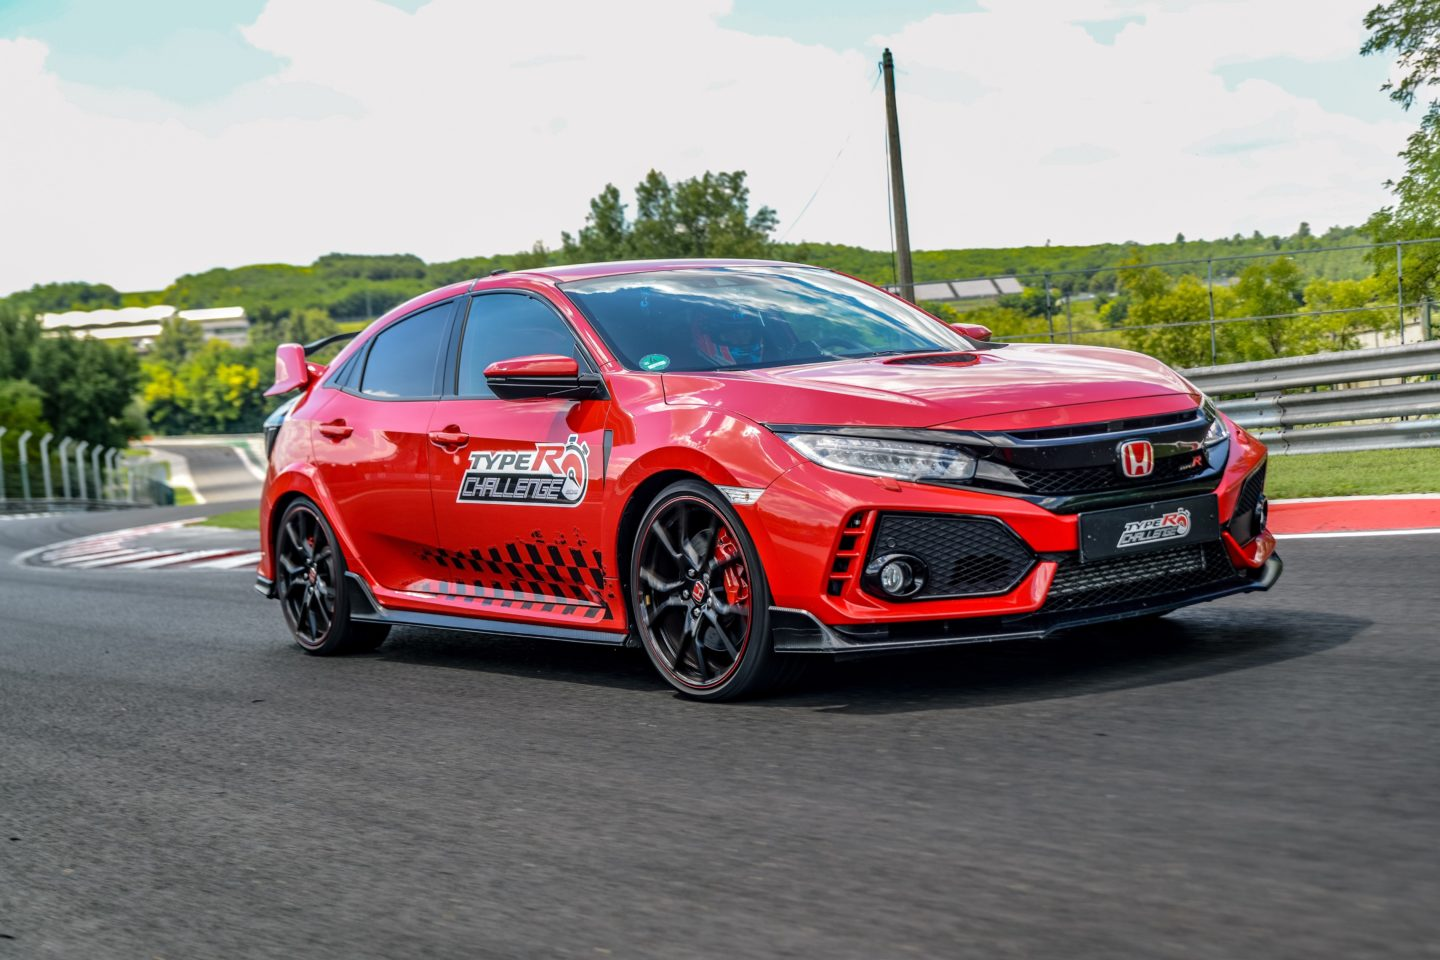 Civic Type R Jenson Button Hungaroring 2018